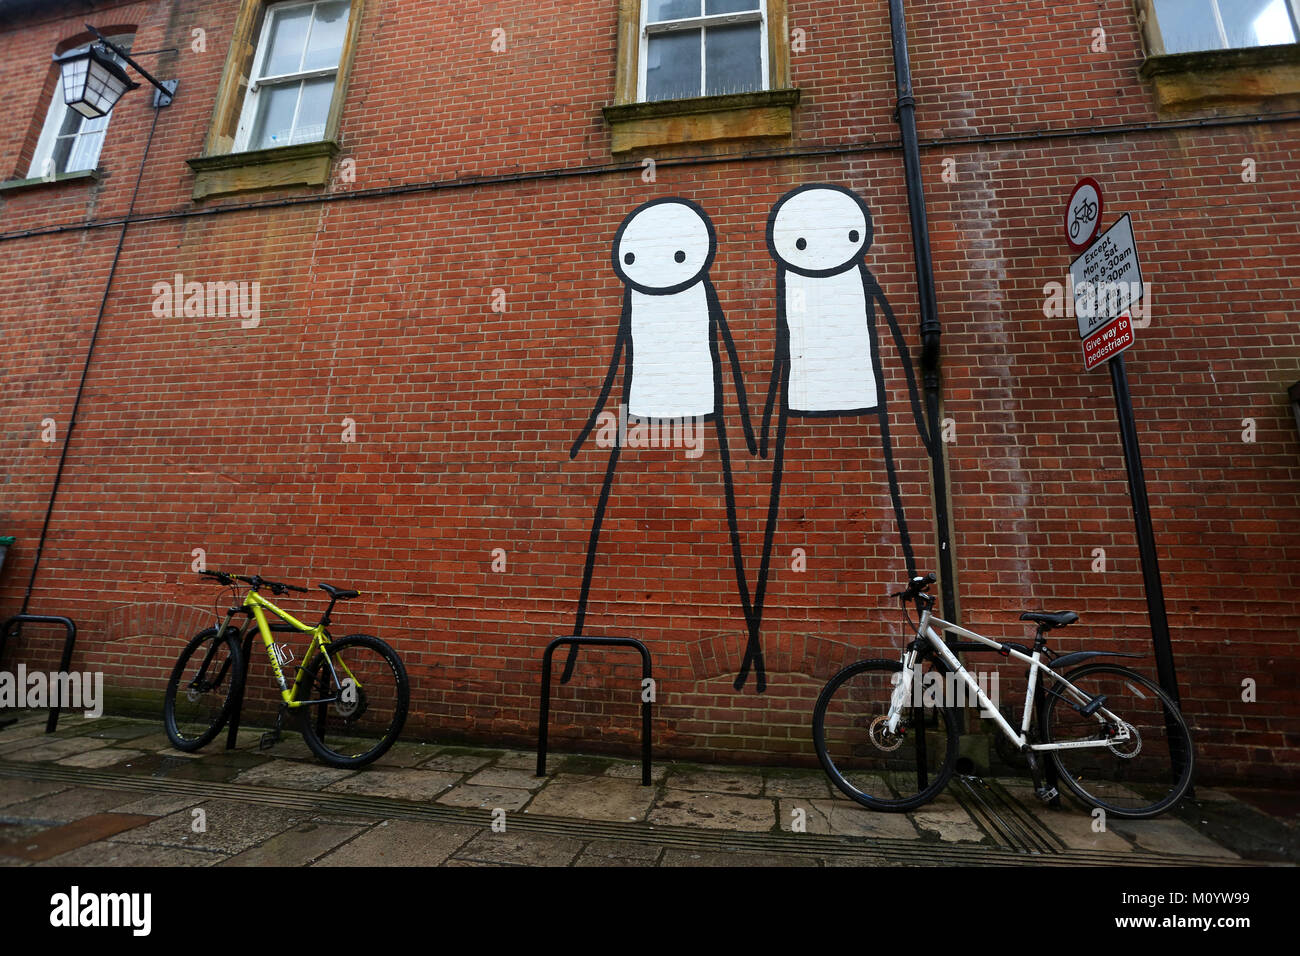 Graffiti pictured on buildings in Chichester, West Sussex, UK. - Stock Image